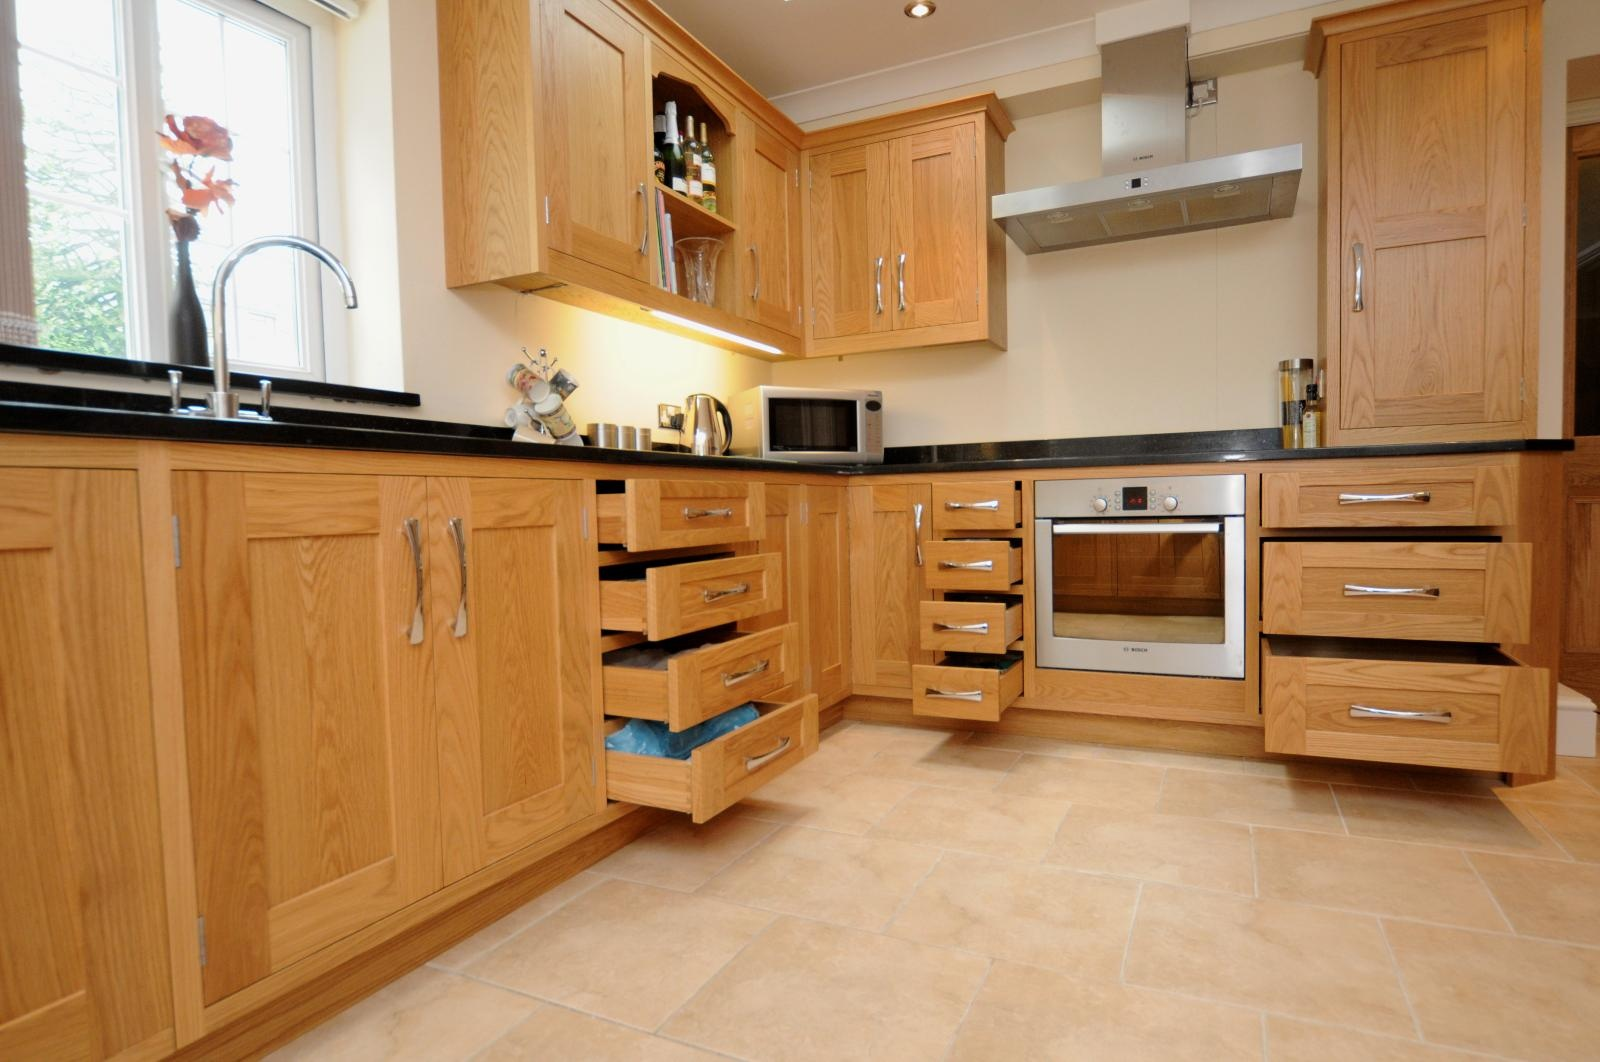 Oak shaker kitchen st davids mark stone 39 s welsh kitchens for Shaker style kitchen units